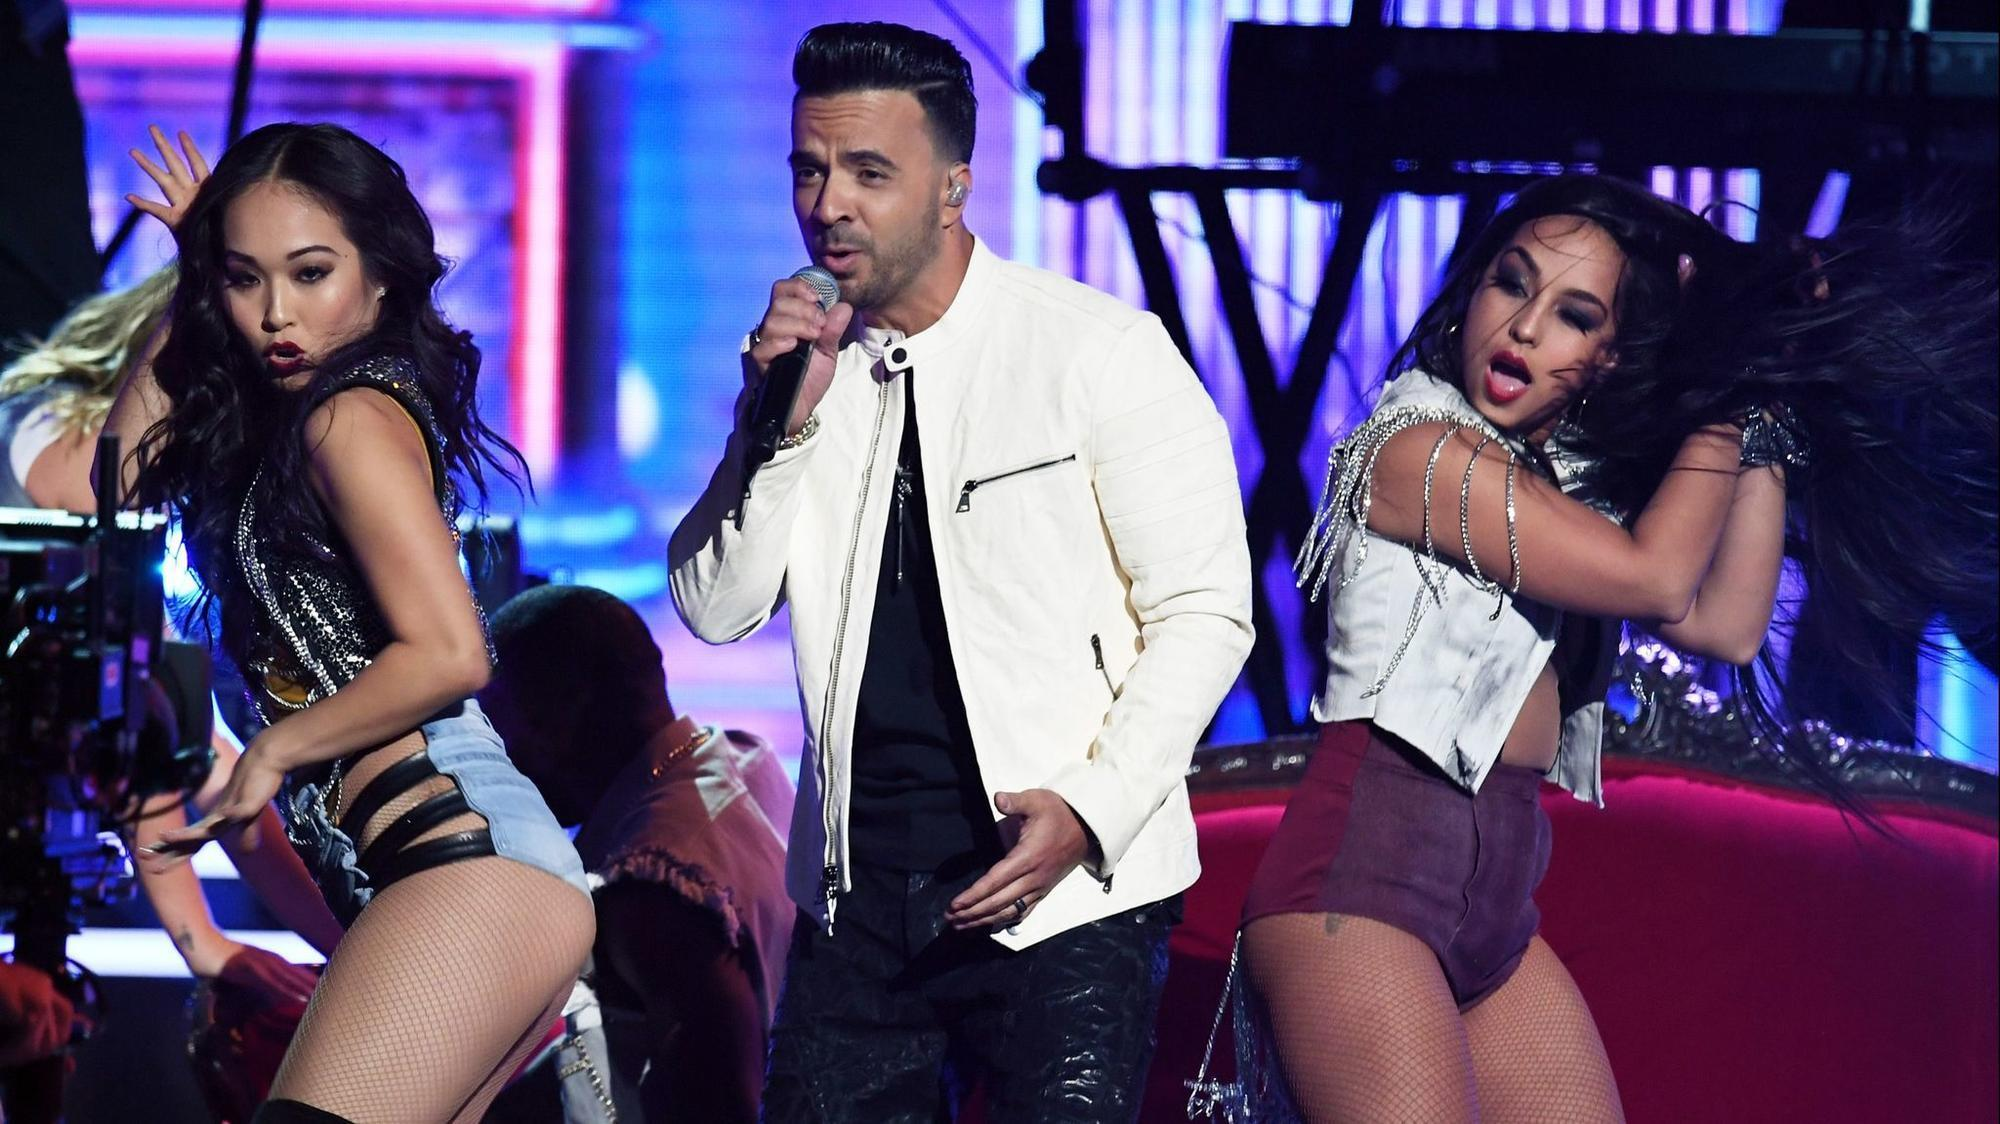 Luis fonsis despacito resurges in popularity after the grammys luis fonsis despacito resurges in popularity after the grammys sun sentinel stopboris Choice Image